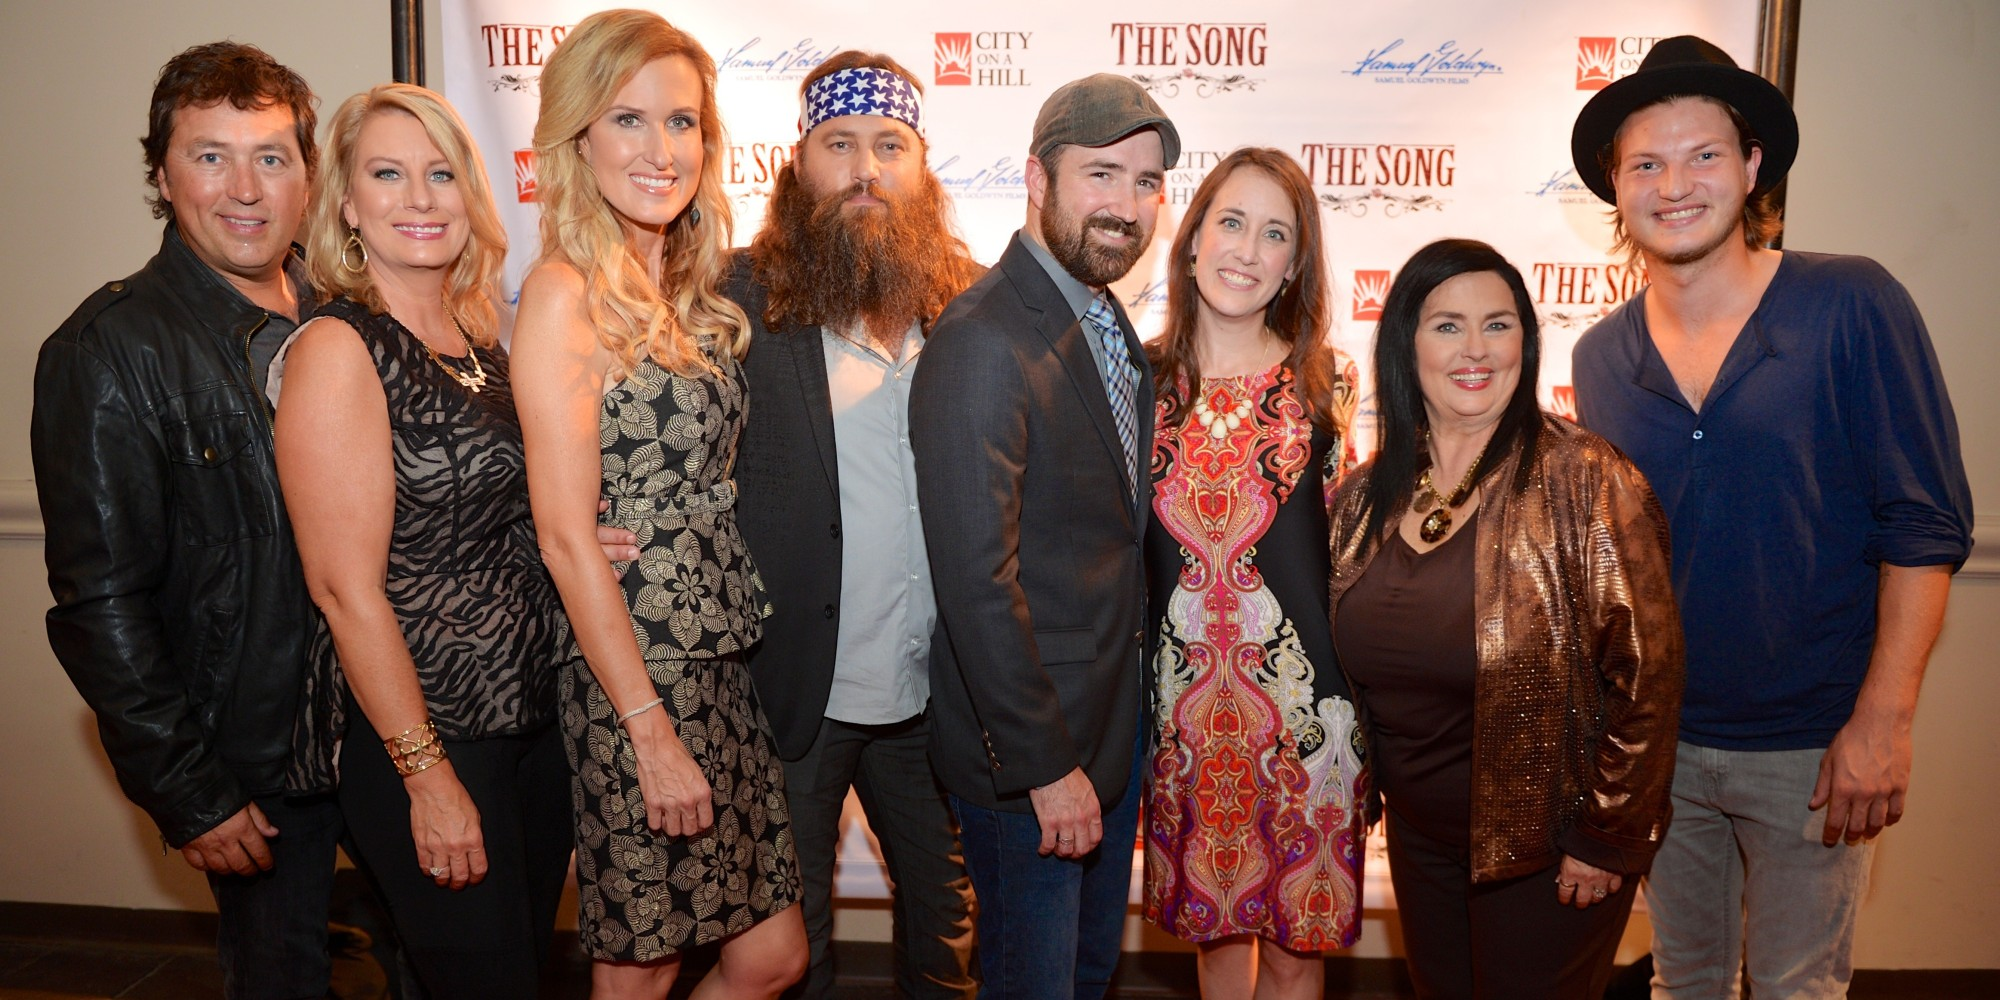 Duck Dynasty Star Lisa Robertson Says She Is Pro Choice